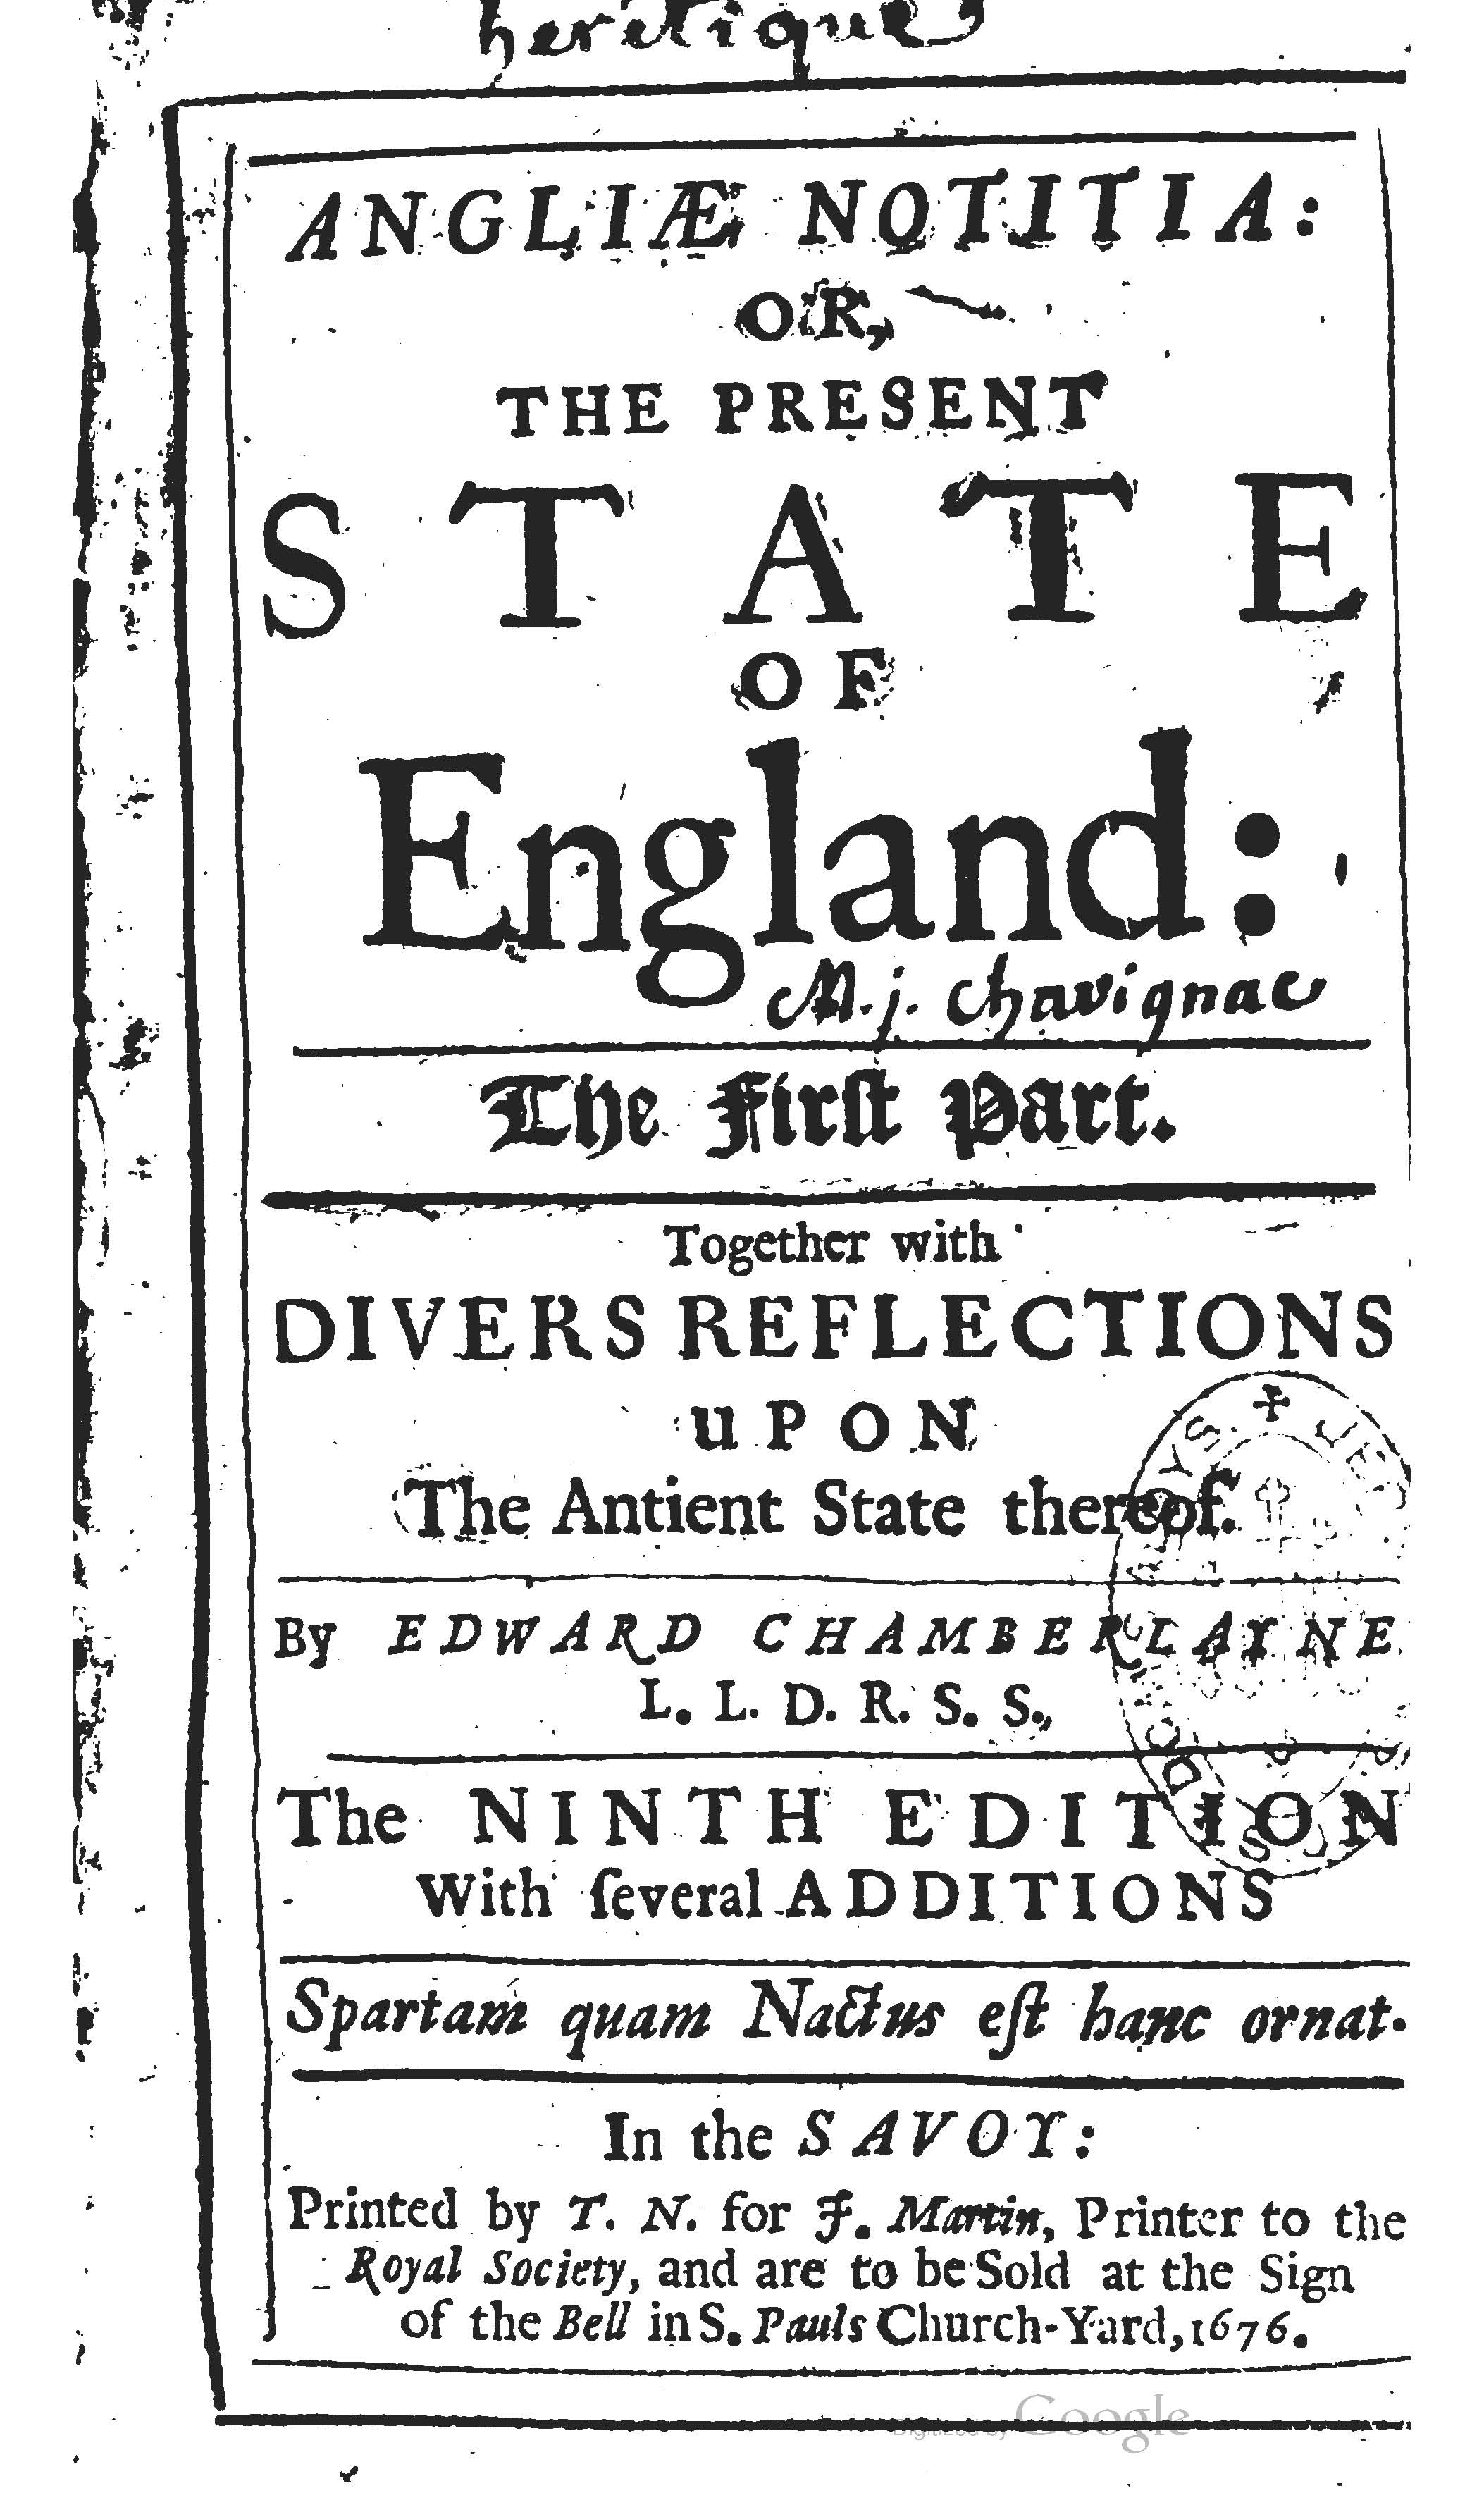 The title page of Chamberlayne's work ''Angliæ Notitia: Or, The Present State of England: The First Part'' (9th edition, 1676)